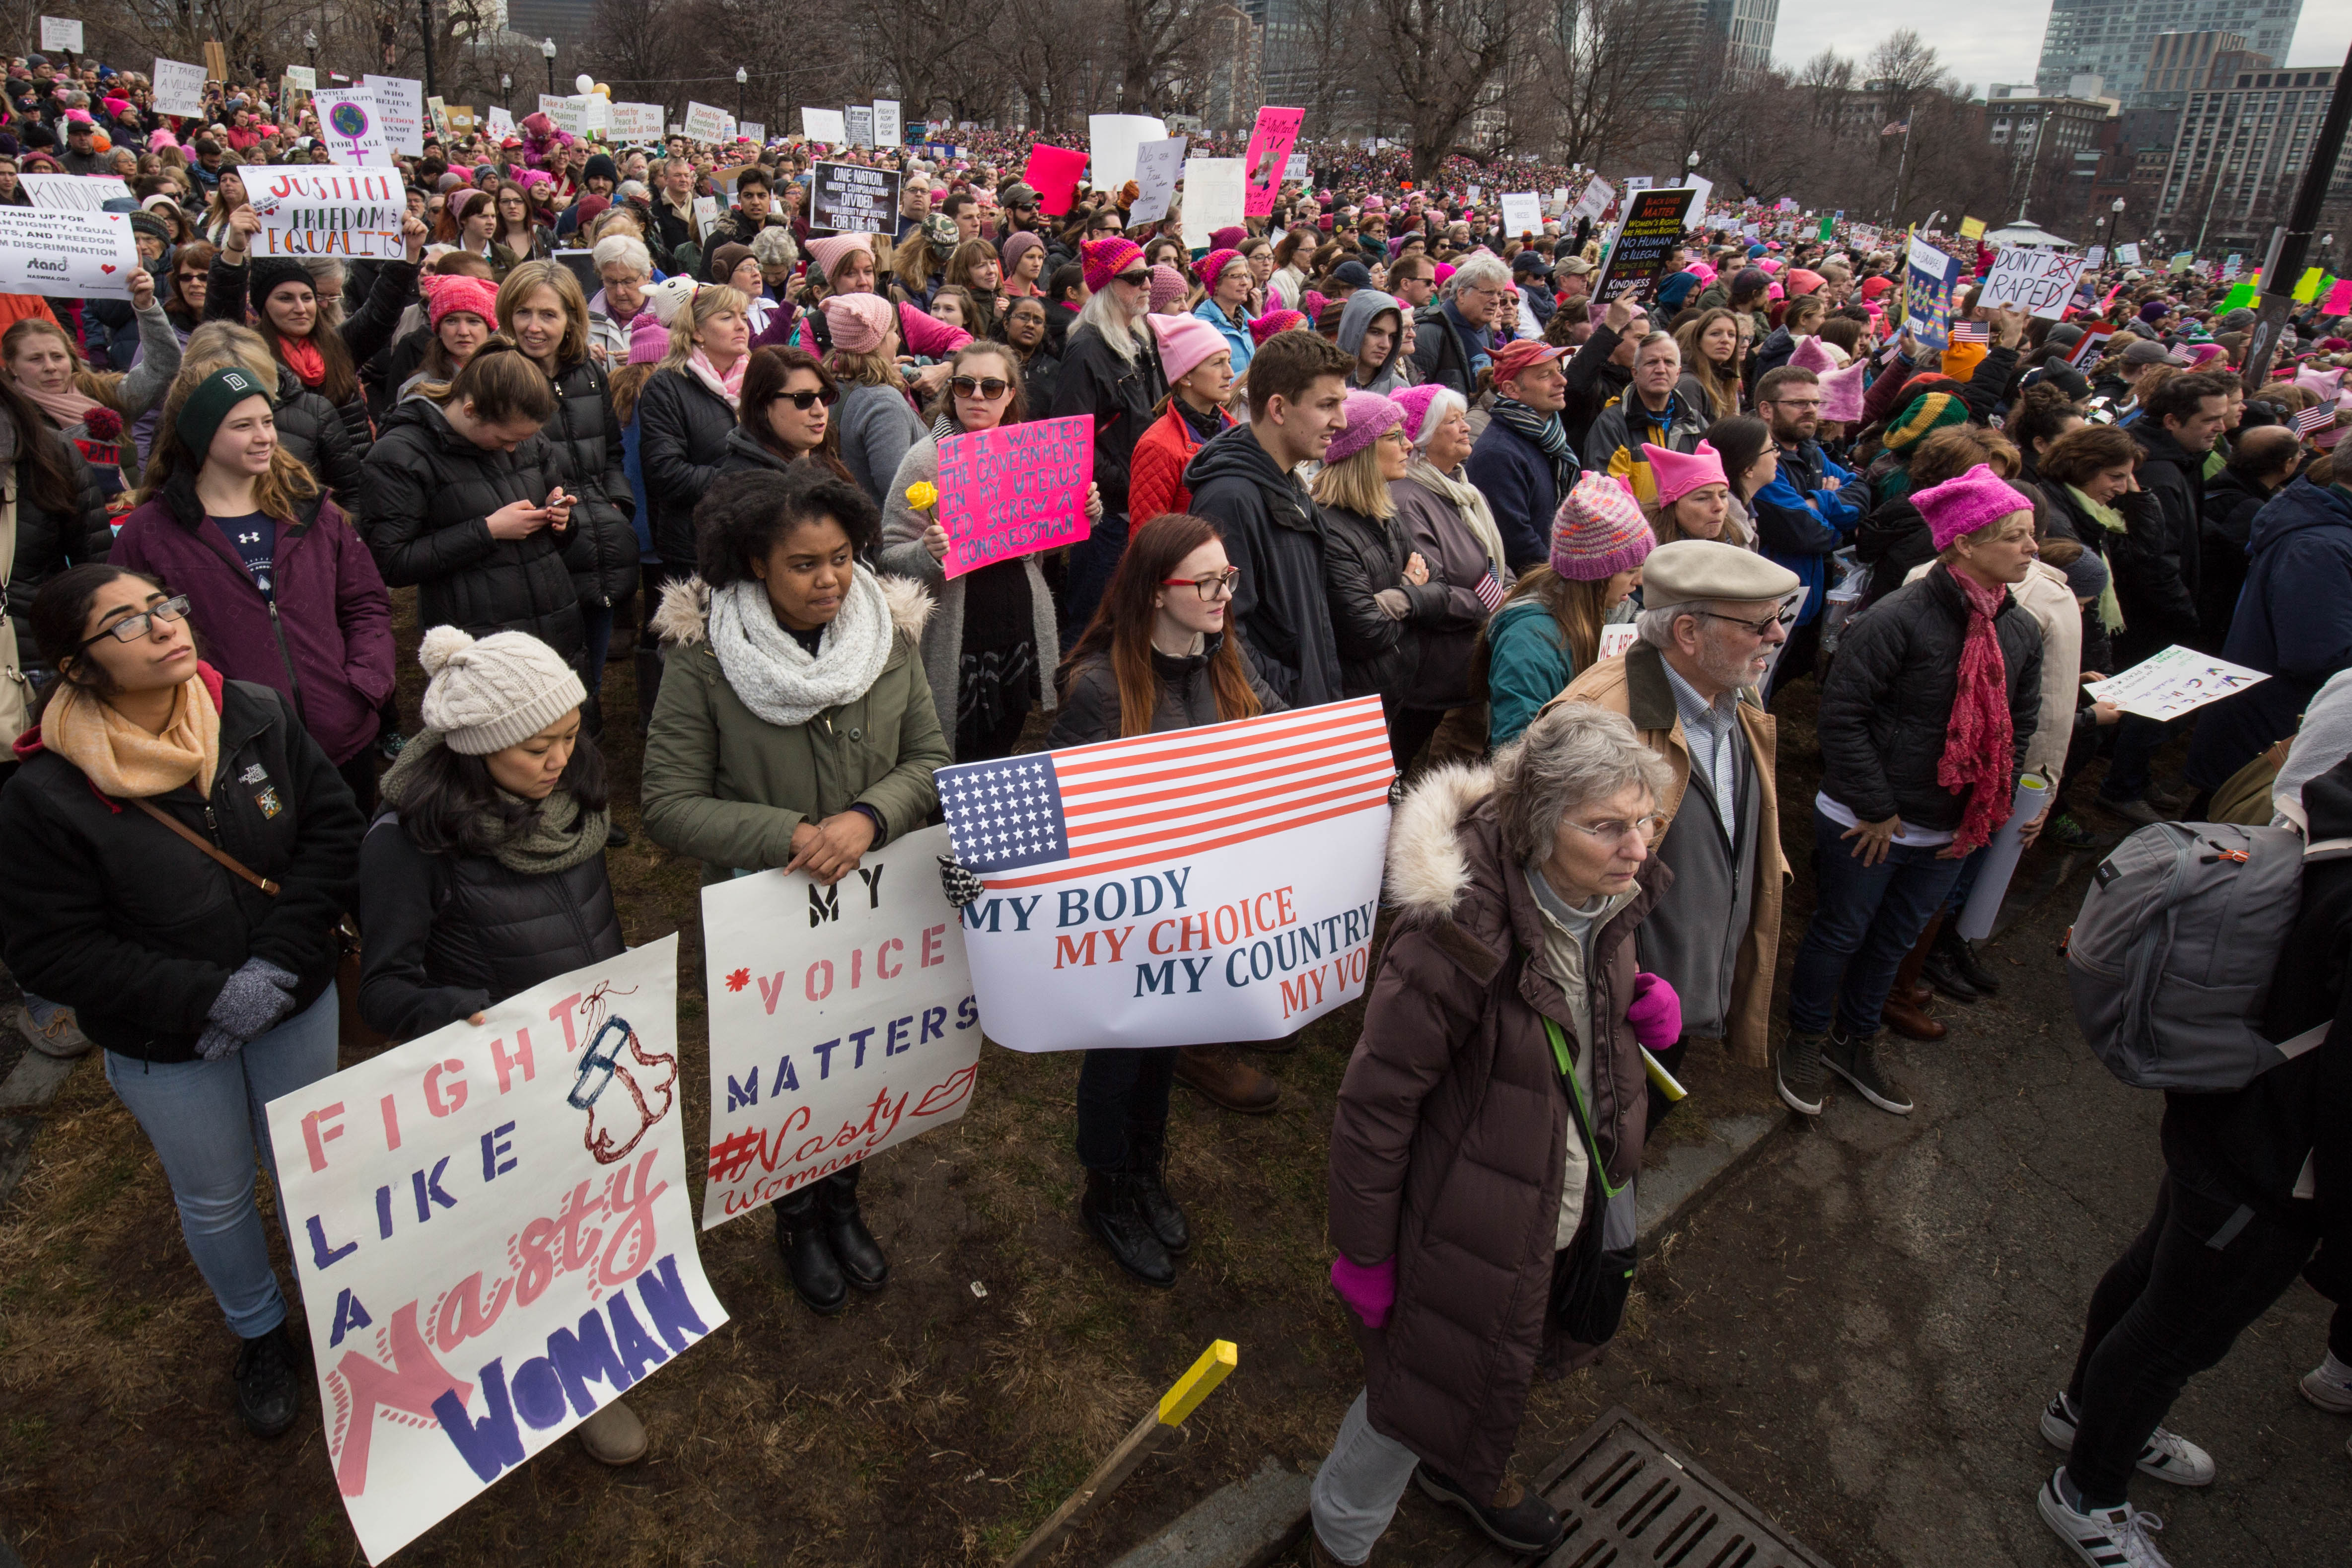 Kristen Coogan, 24, of Marlboro, Mass., and Jessica Pierre, 24, of Somerville, Mass., look on during the Boston Women's March on Jan. 21, 2017. (Photo by Alastair Pike)